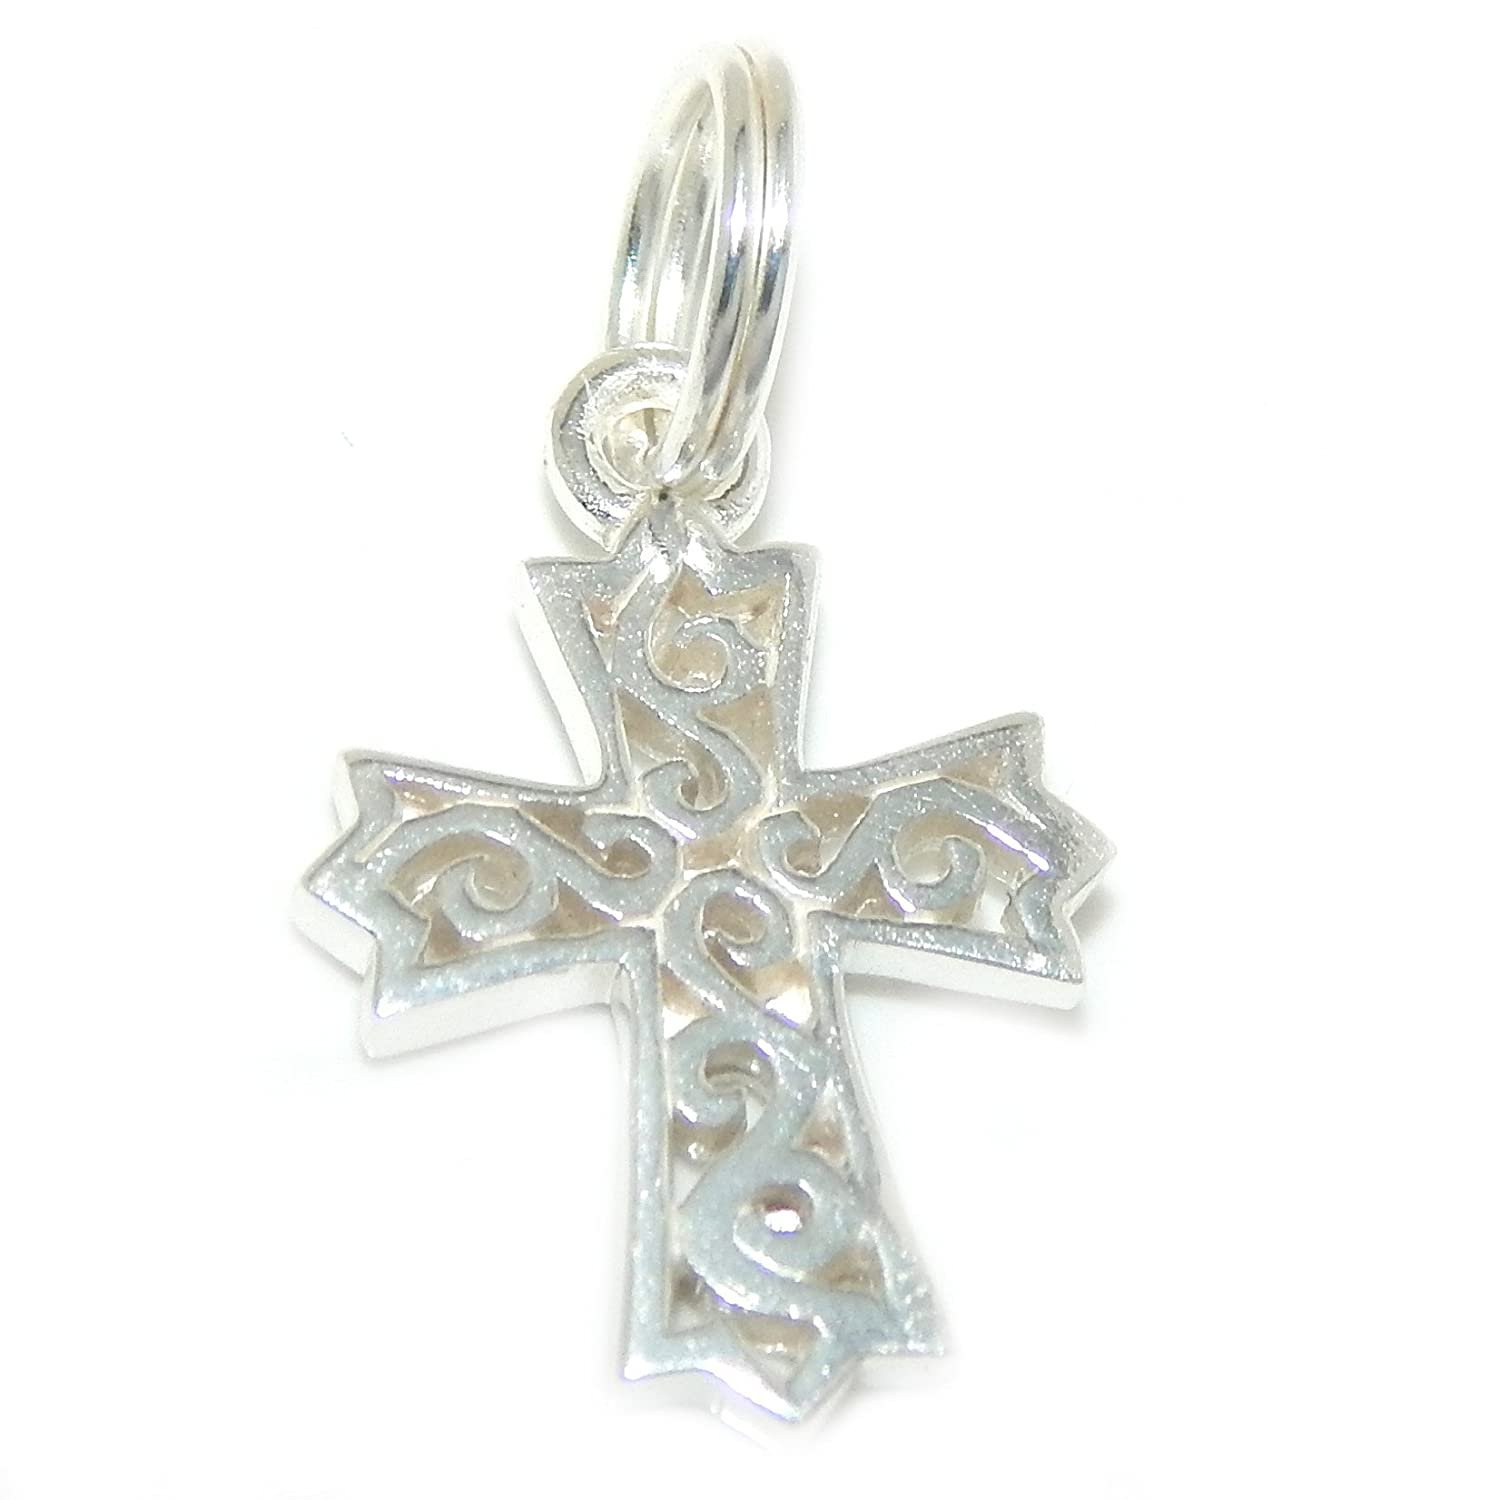 ICYROSE Solid 925 Sterling Silver Dangling Gothic Cross with Scrolls Charm Bead